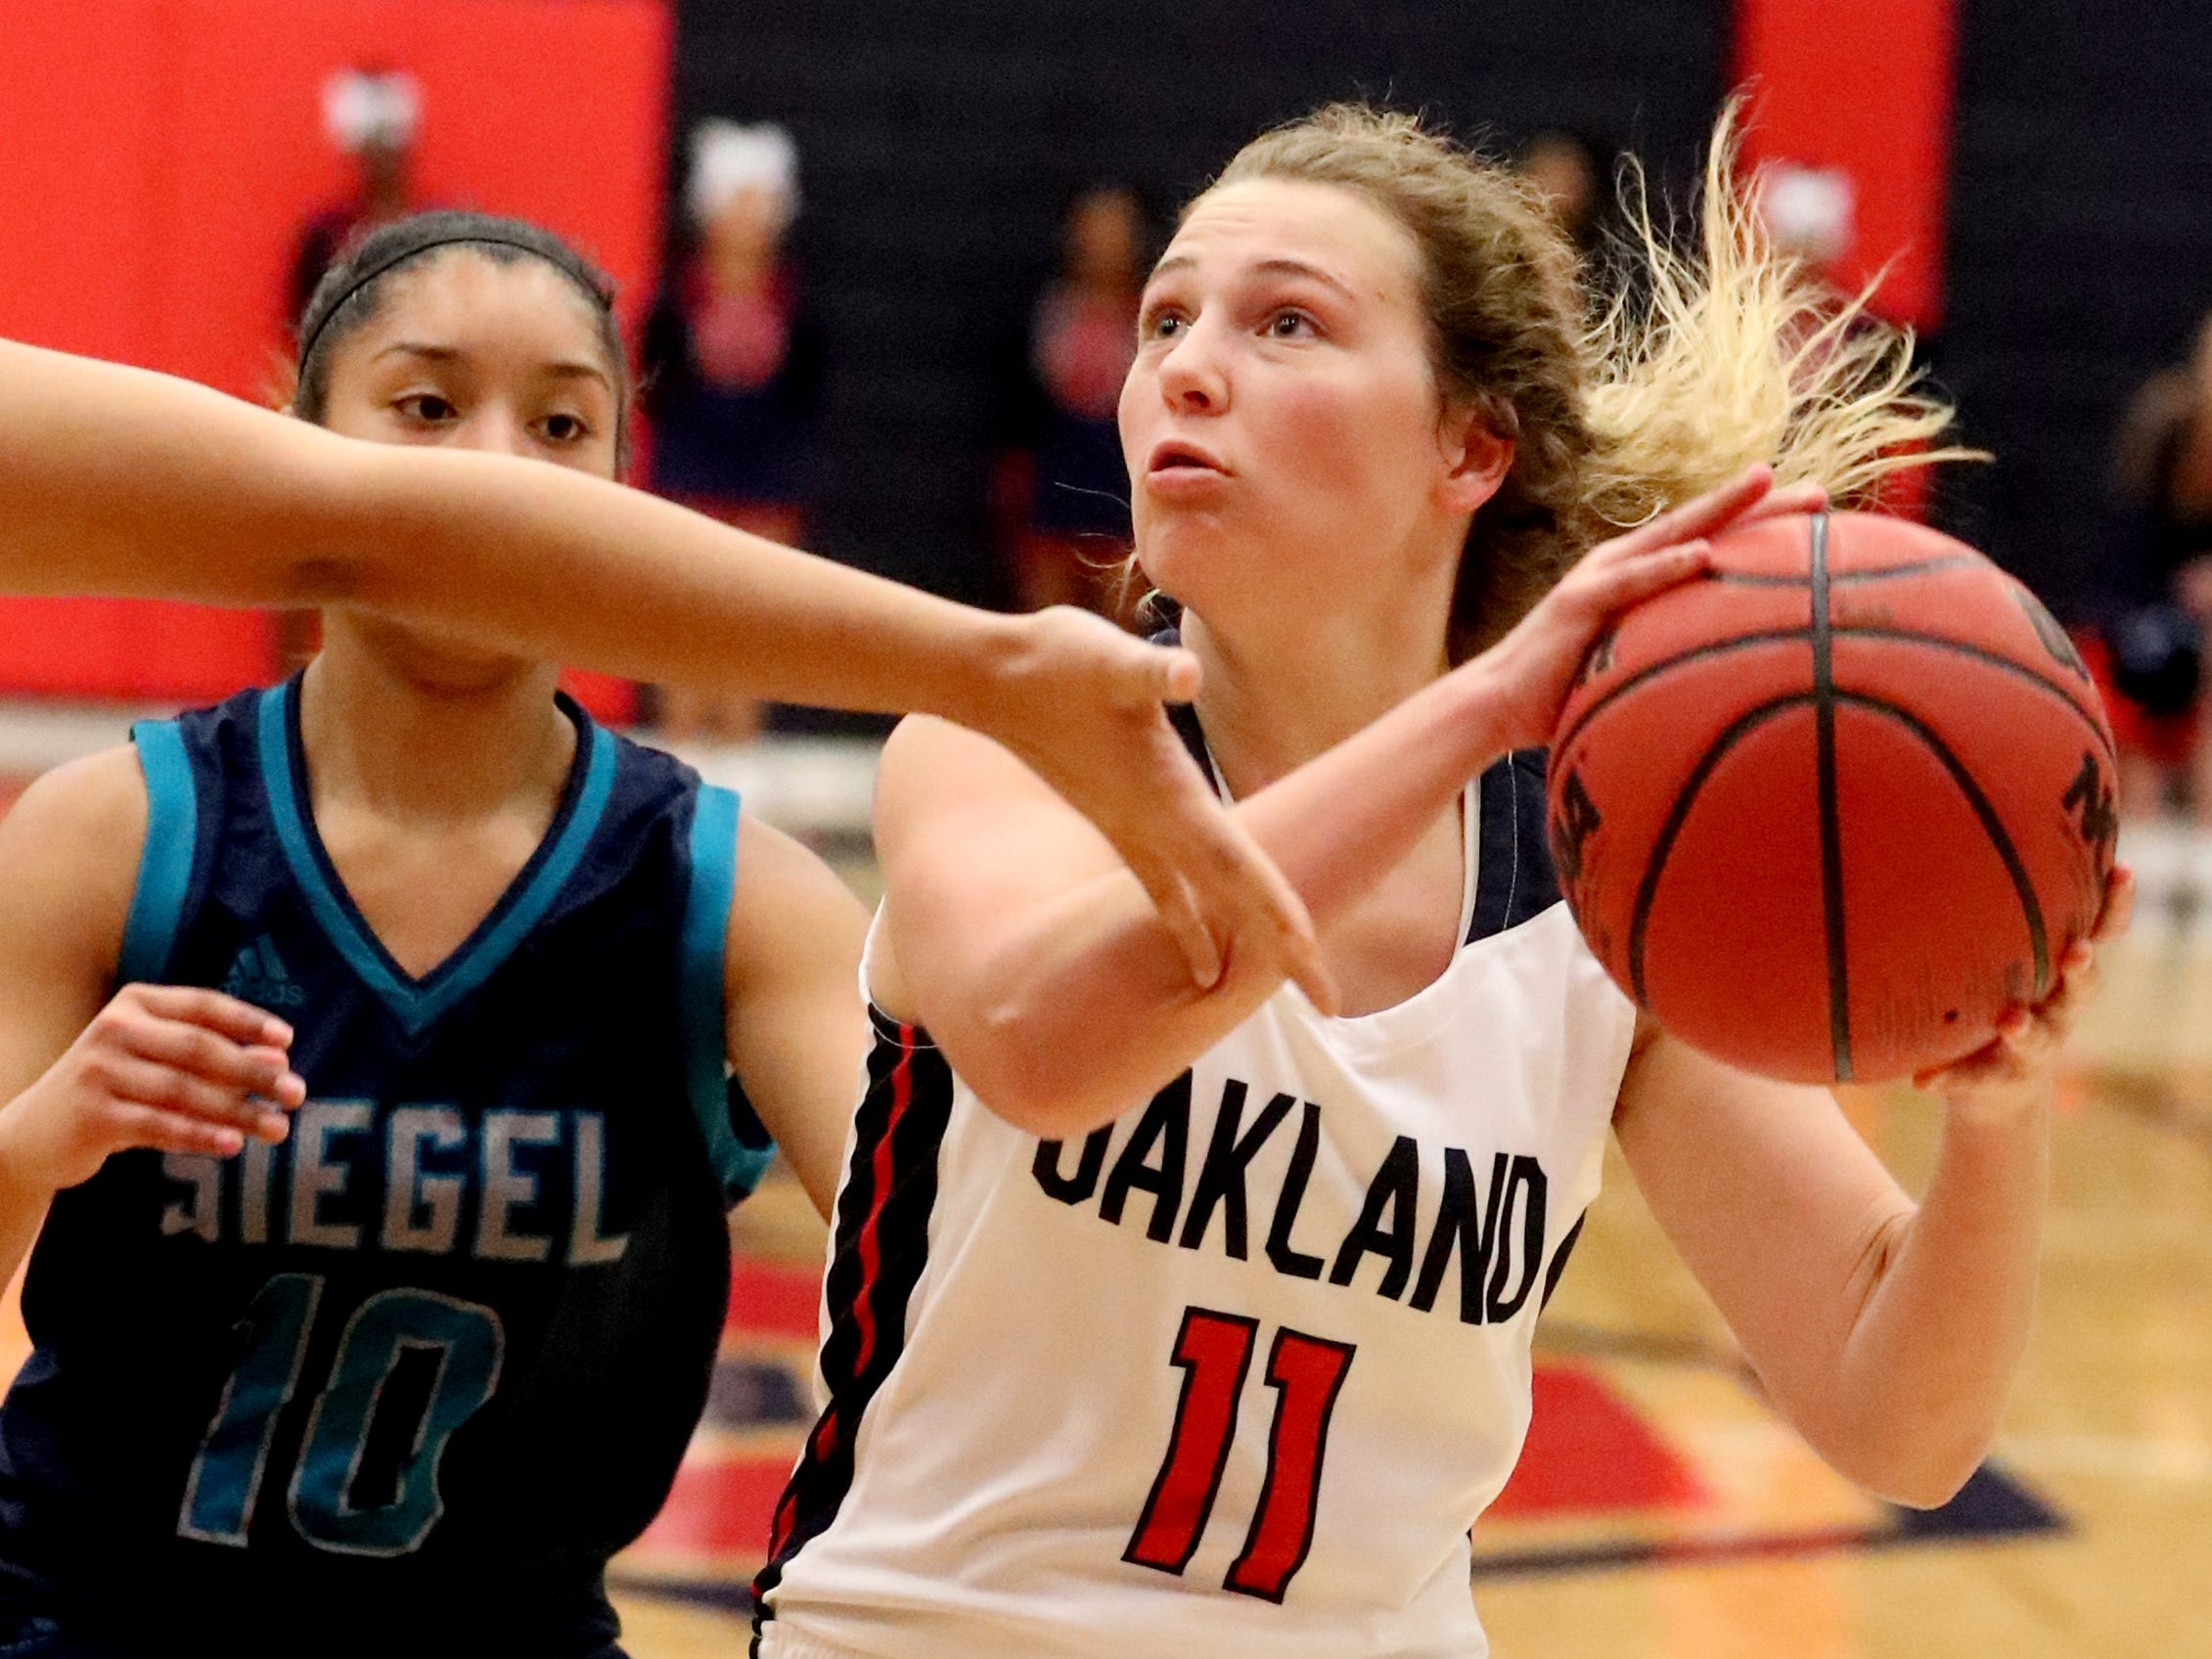 Oakland's Claira McGowan (11) goes up for a basket as Siegel's Genesis Sneed (40) guards her during the game at Oakland on Tuesday, Dec.. 4, 2018.